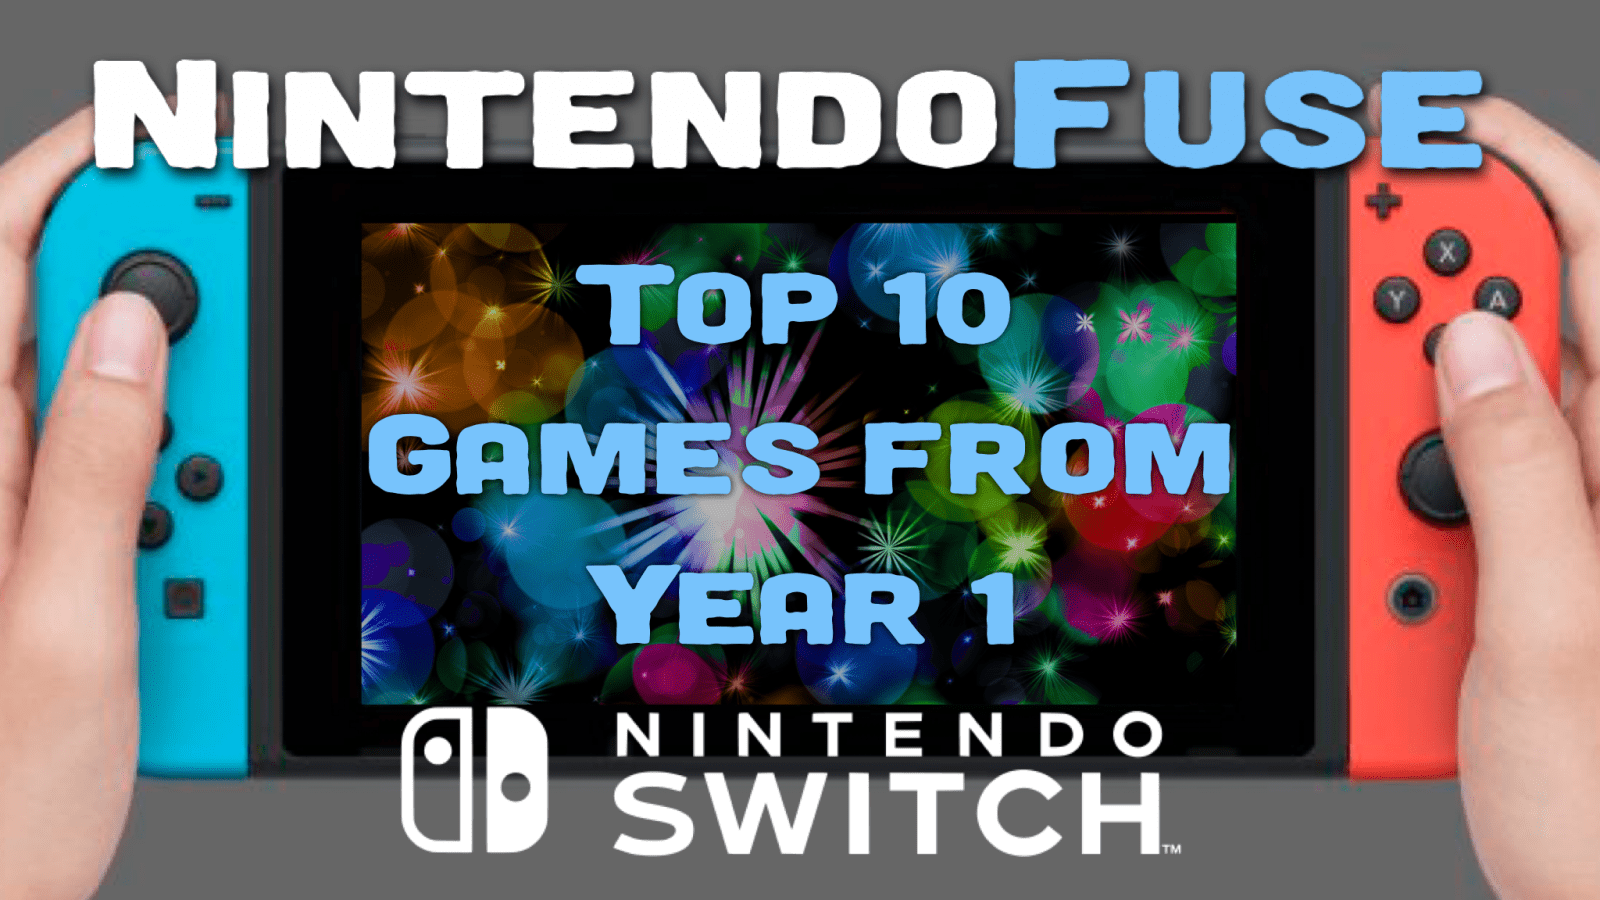 Top 10 Nintendo Switch Games from Year 1 – NintendoFuse